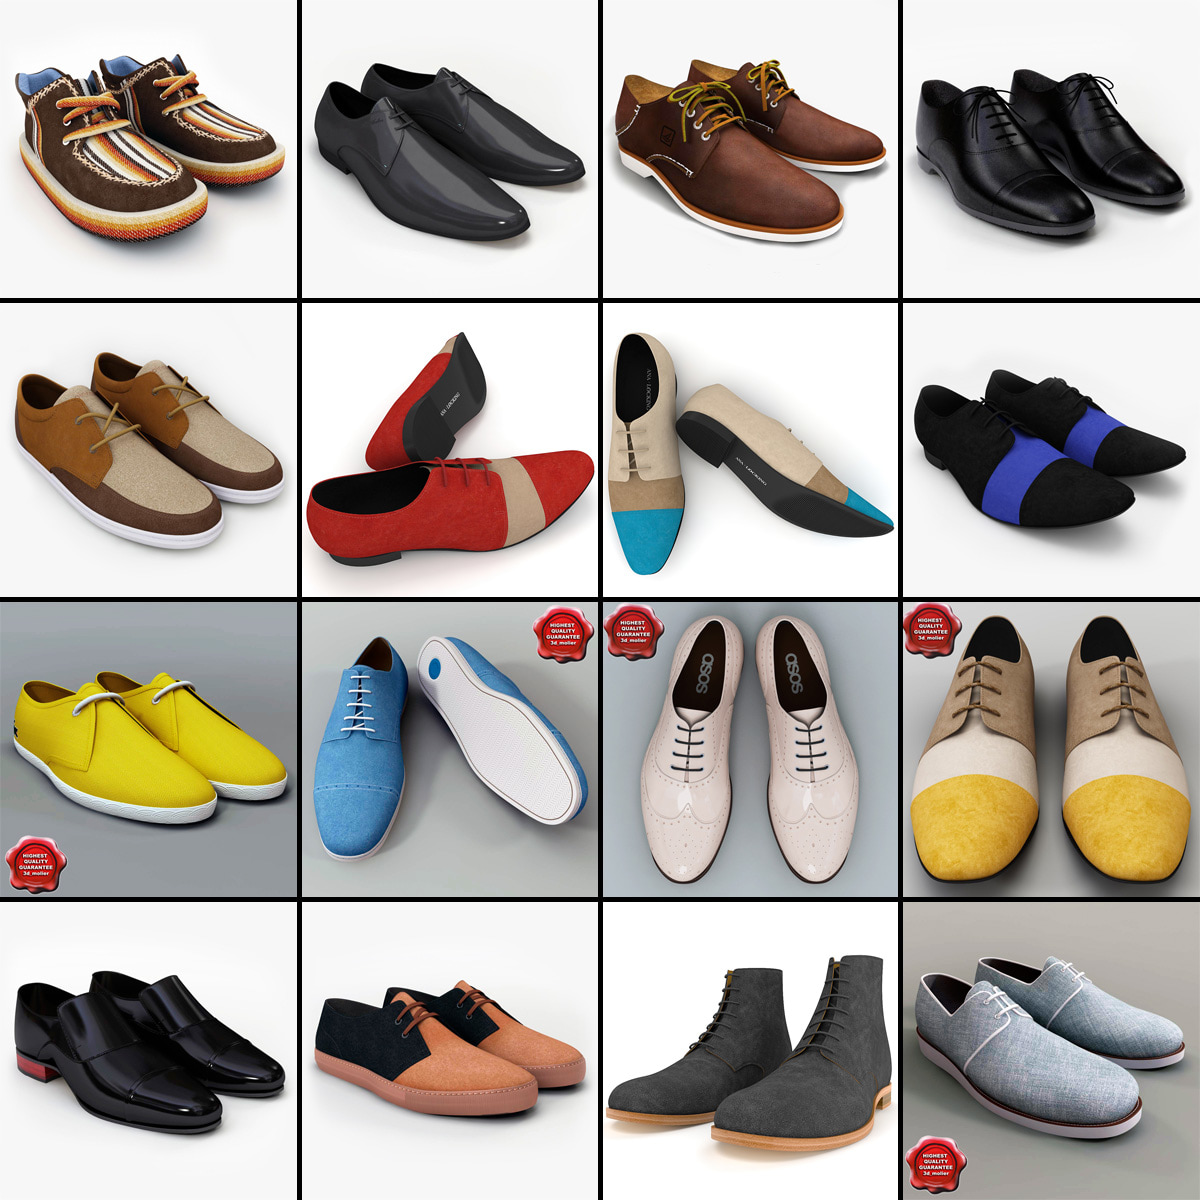 Men_Shoes_Collection_V10_000.jpg